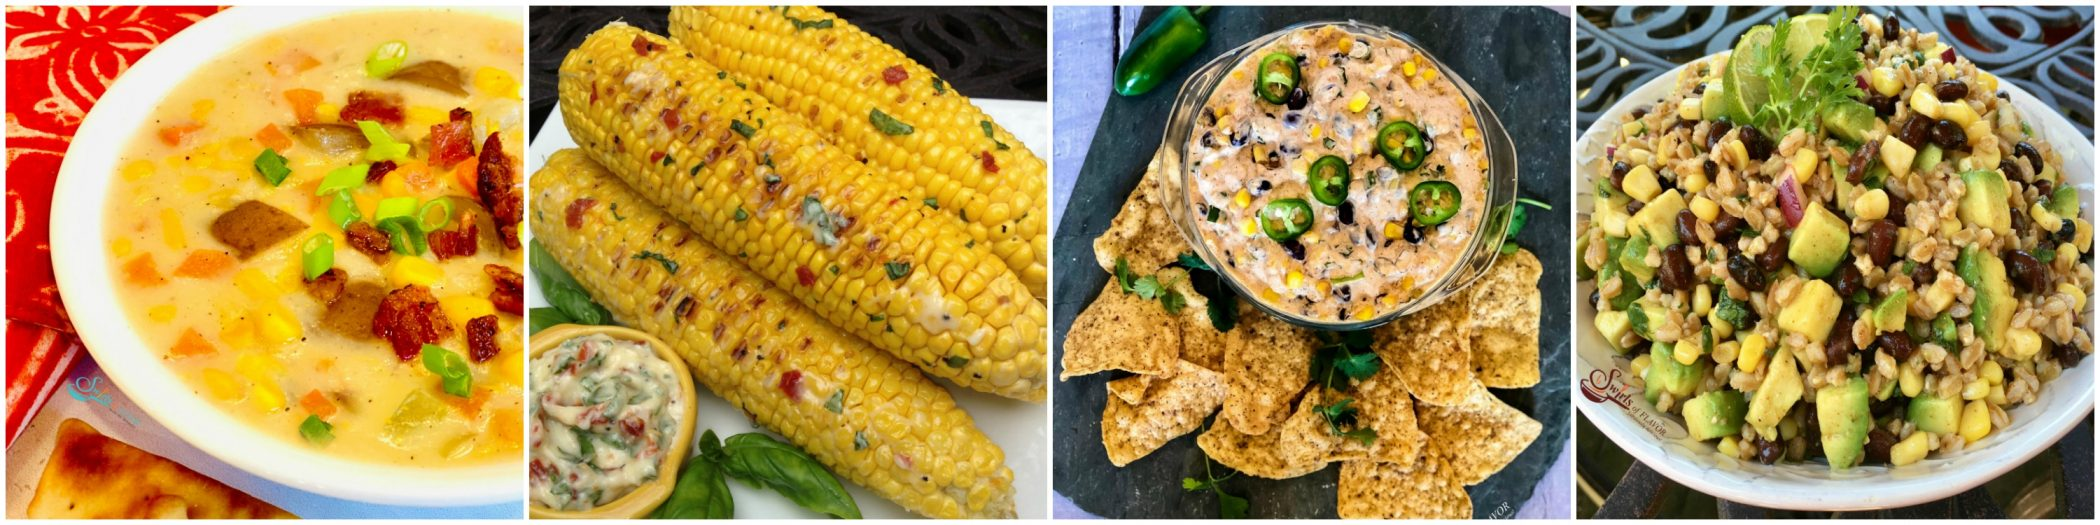 Left to right: Corn Chowder; Grilled Corn; Corn dip; Corn Farro Salad